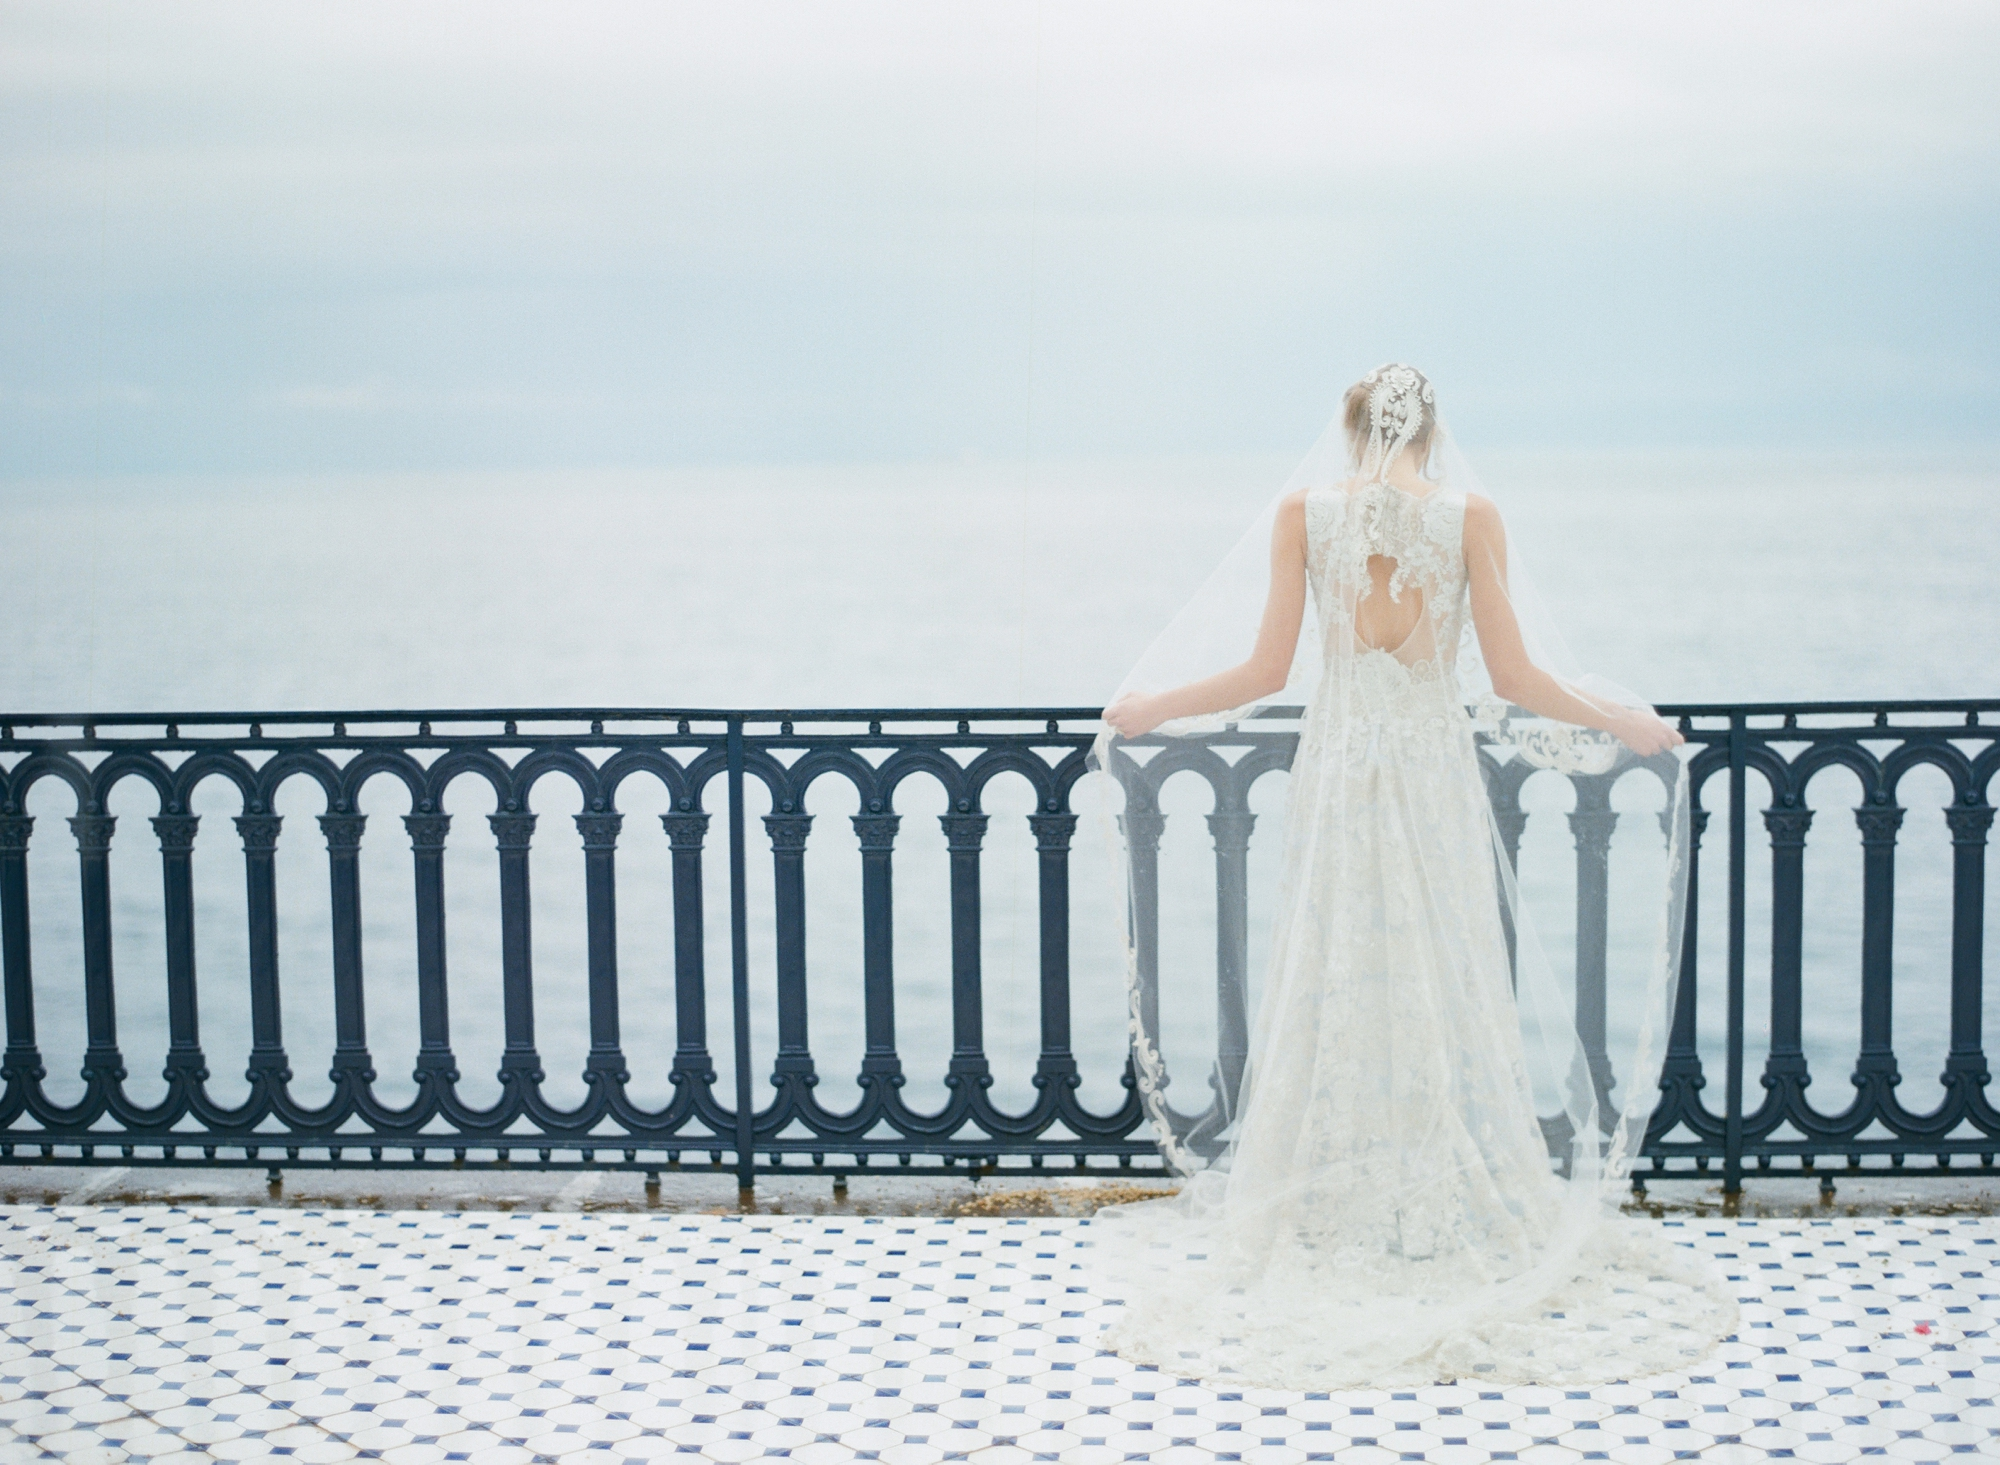 LVL-Weddings-and-Events-Villa-La-Terrazza-Sorrento-Italy-1 - LVL ...